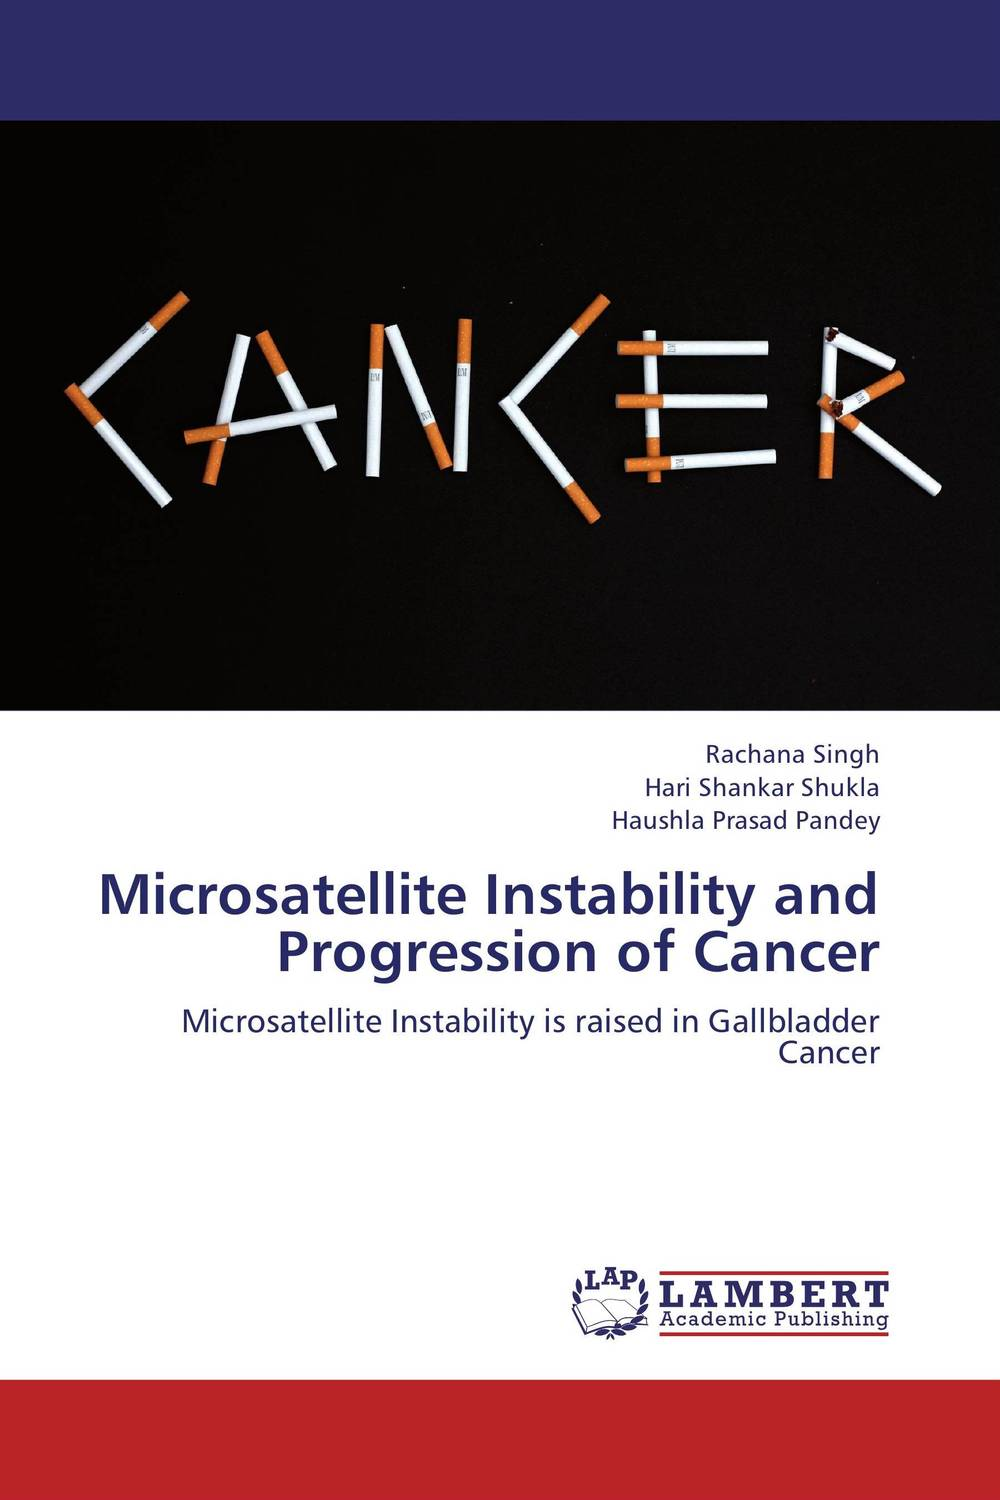 Microsatellite Instability and Progression of Cancer